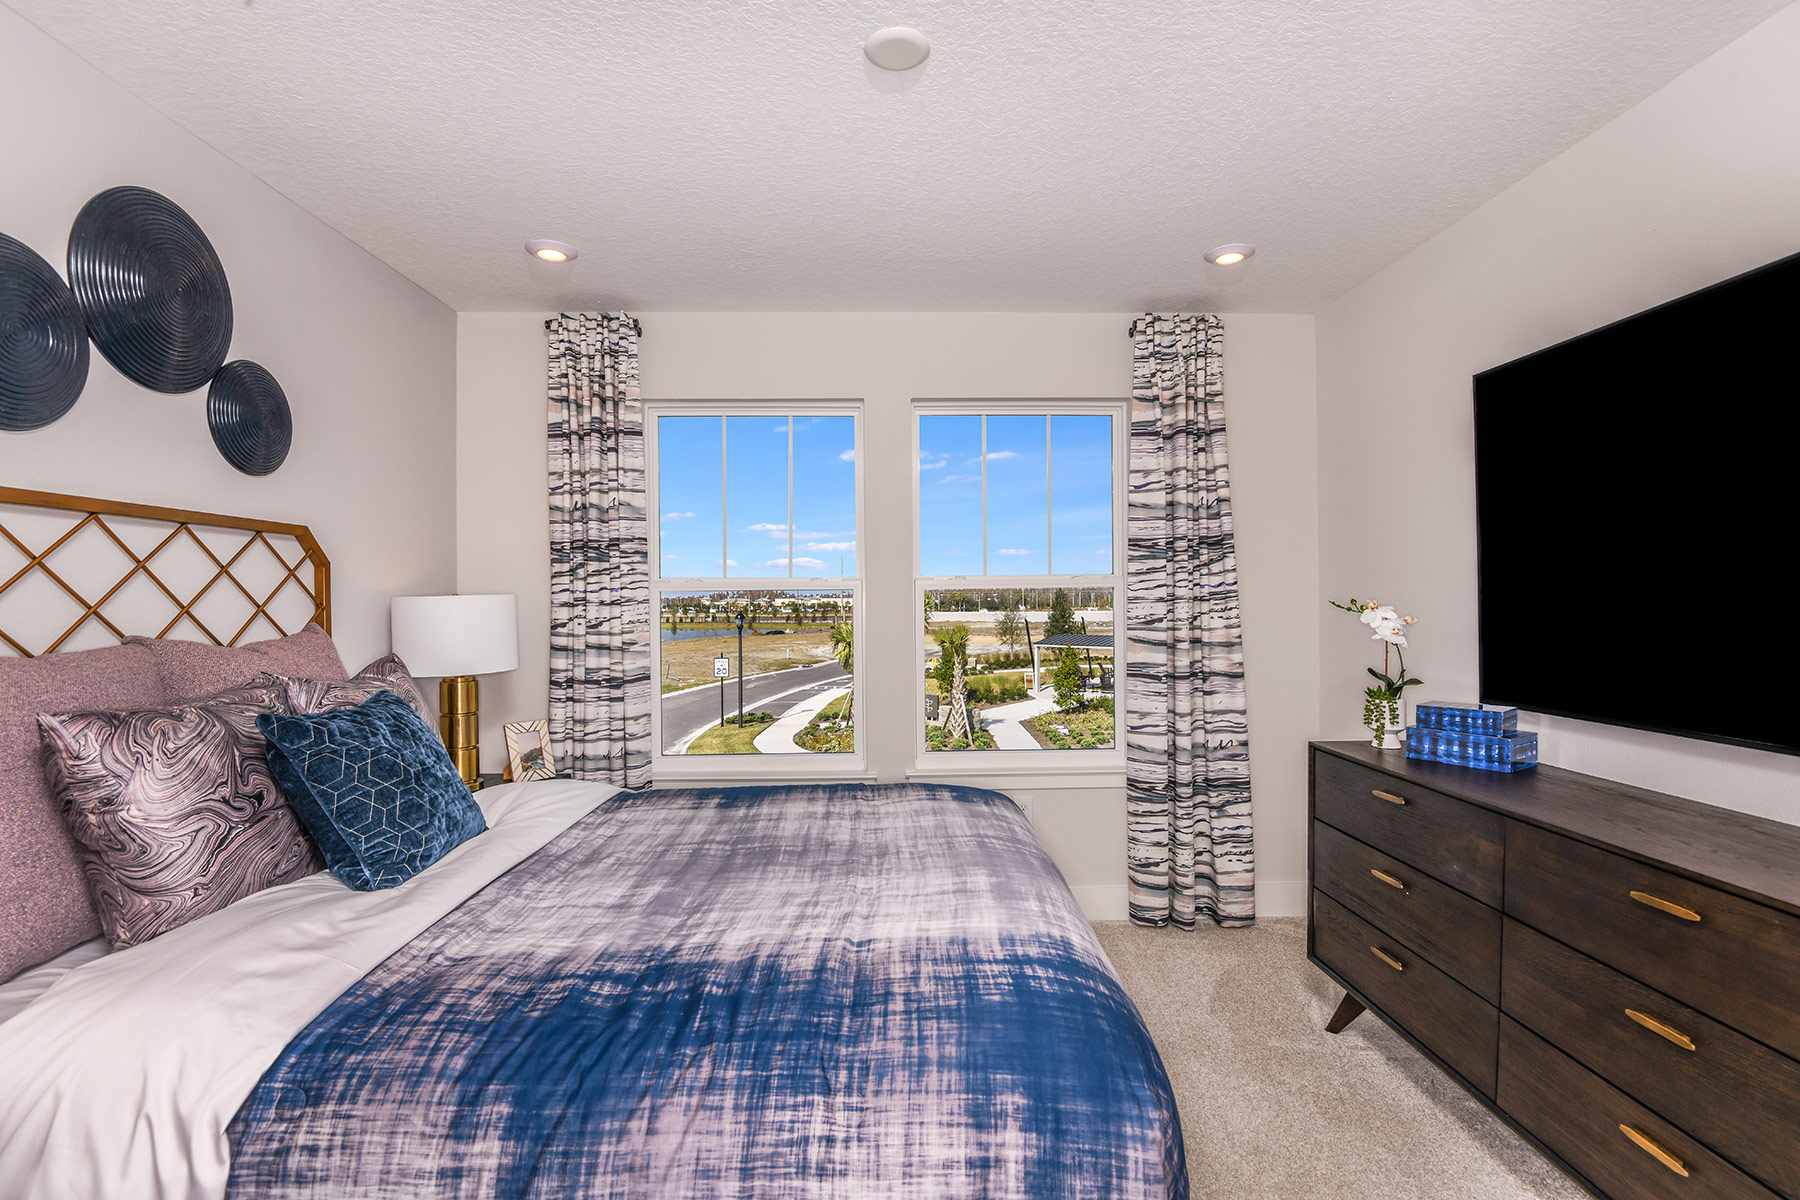 Marianna Plan Bedroom at Parkview at Long Lake Ranch in Lutz Florida by Mattamy Homes